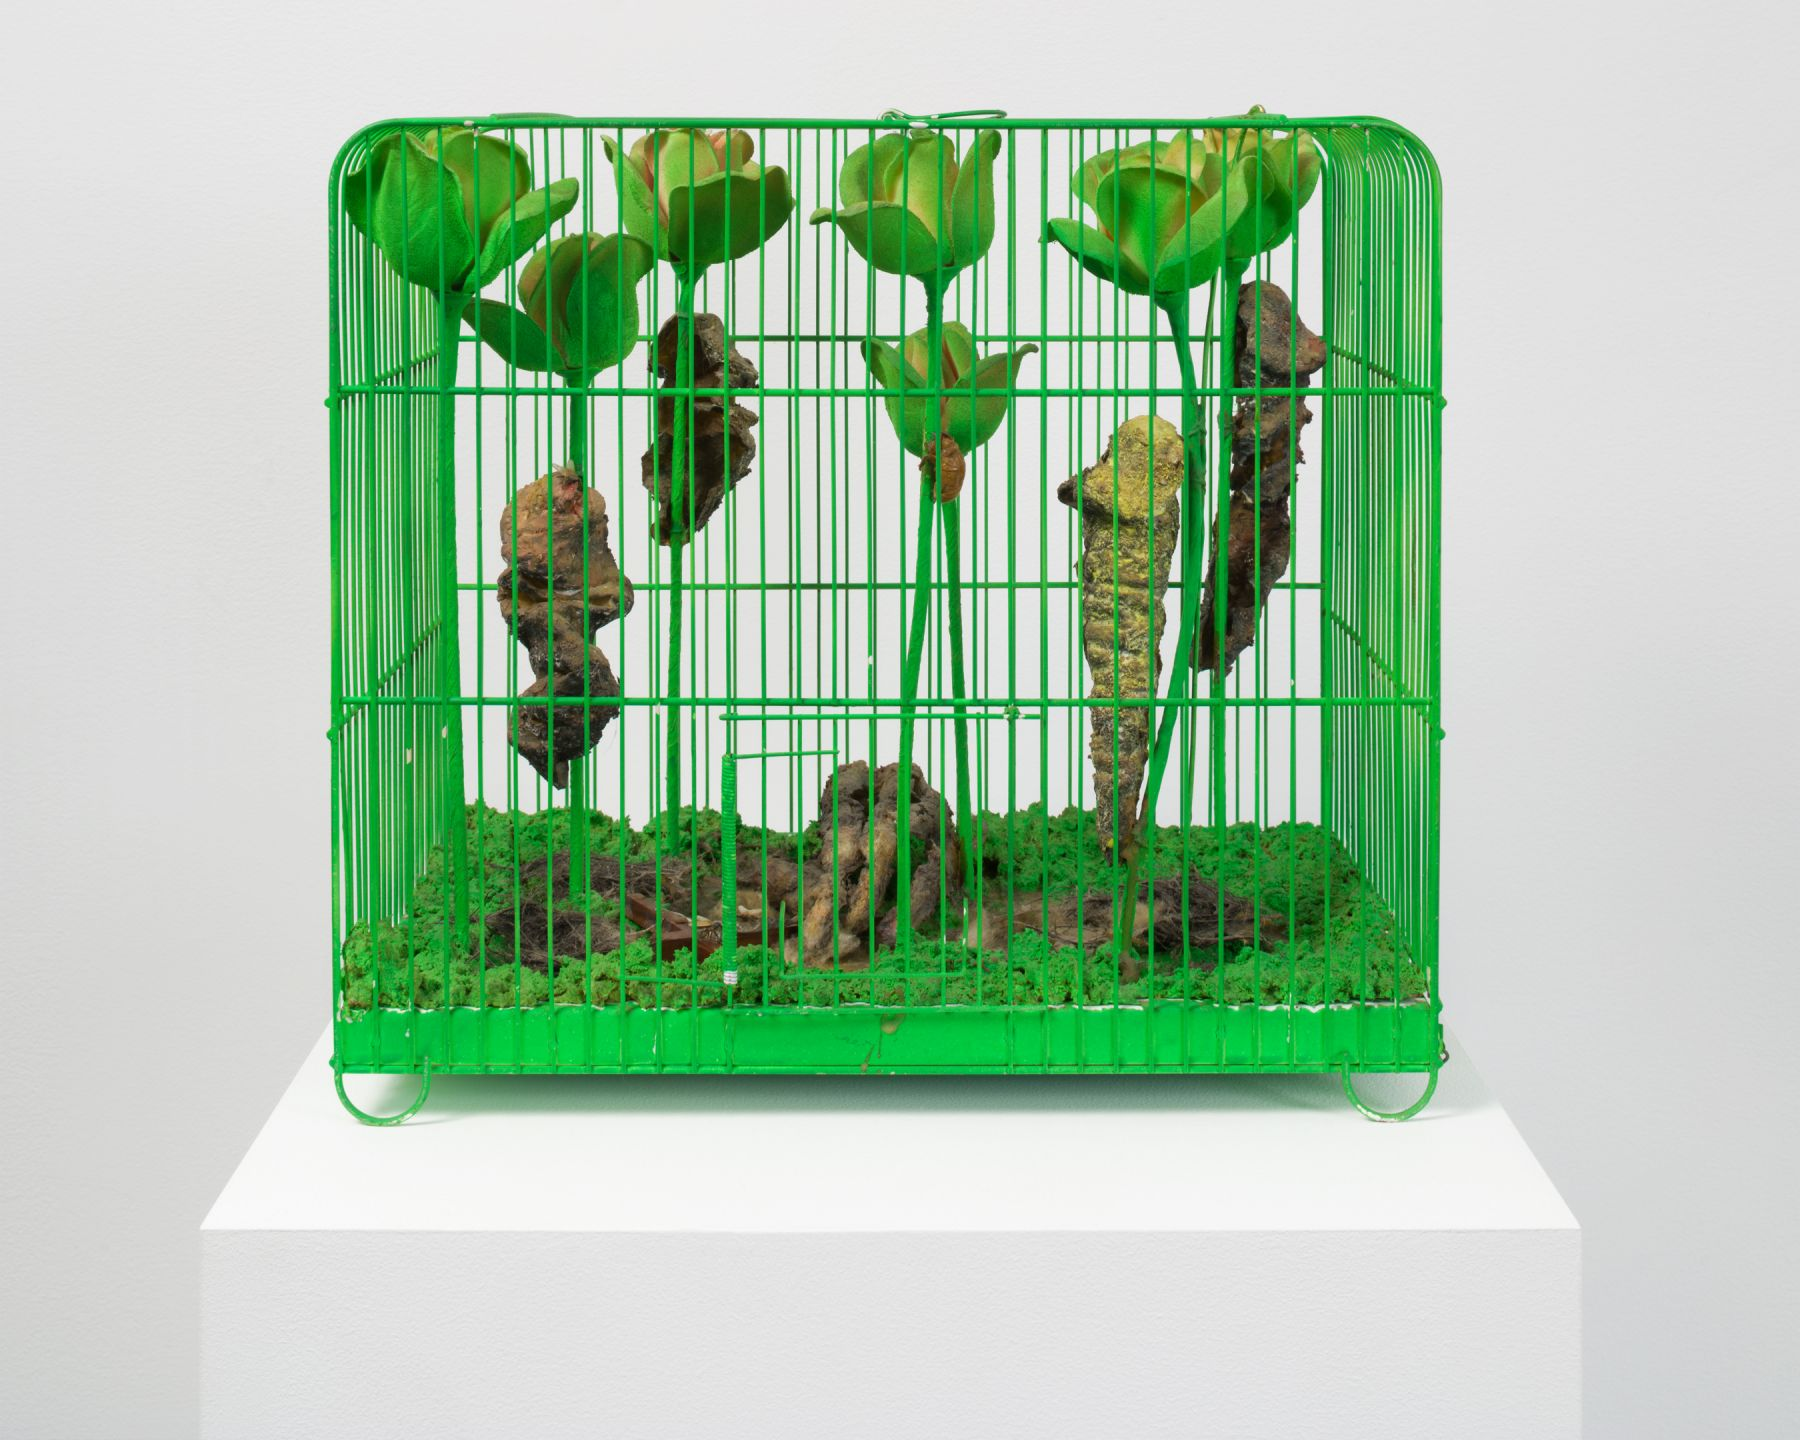 Tetsumi Kudo, Souvenir-La Mue (Memory-Pupal Skin), 1967, Acrylic on plastic flowers and mixed media in painted cage 13 3/4 x 15 1/3 x 9 7/8 inches (34.9 x 38.9 x 25.1 cm)